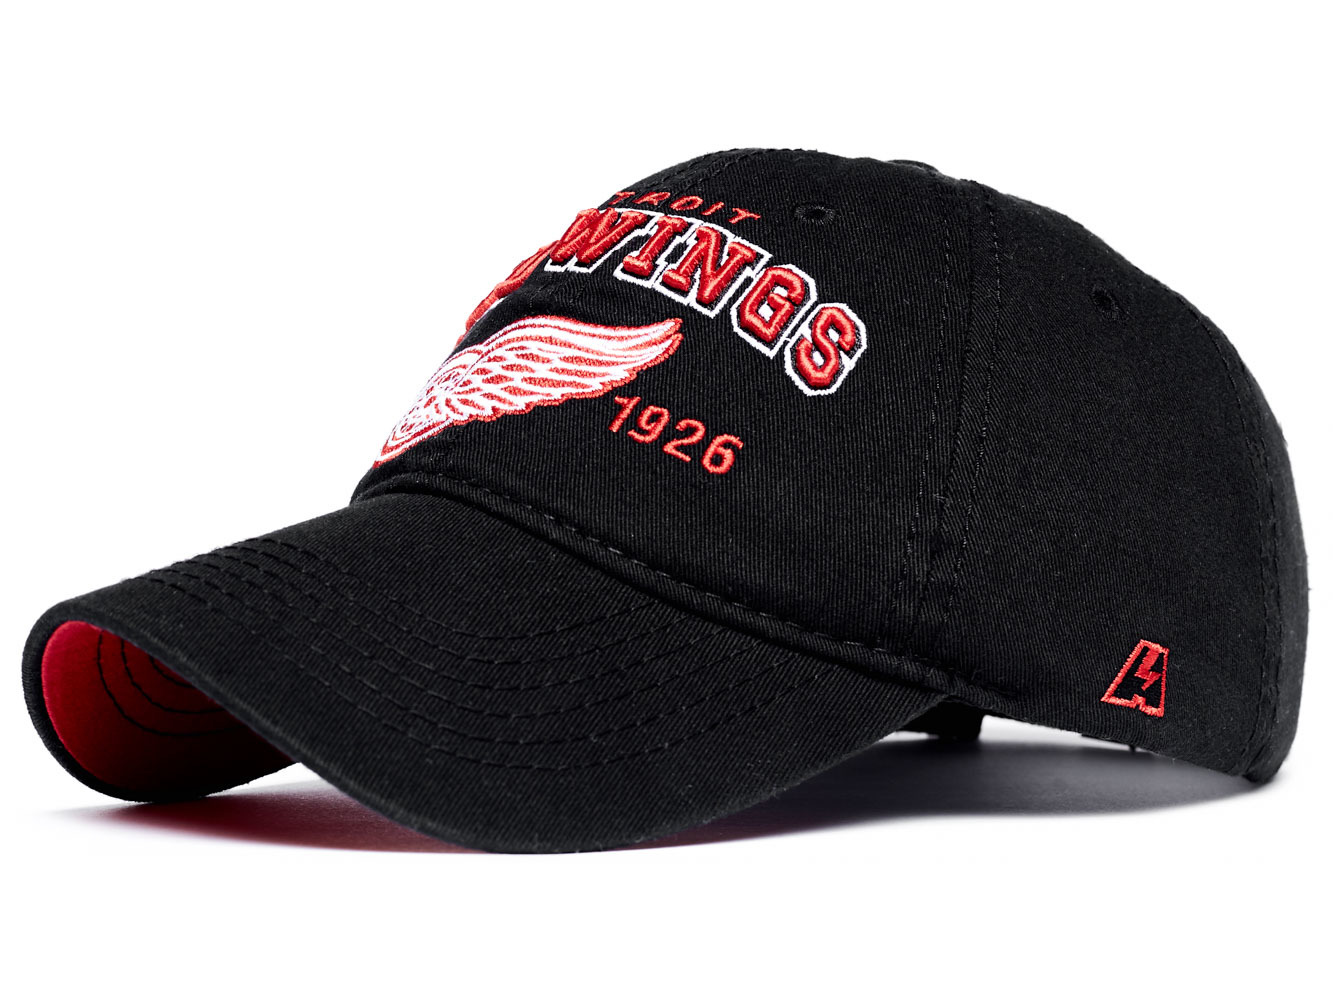 Бейсболка NHL Detroit Red Wings est. 1926